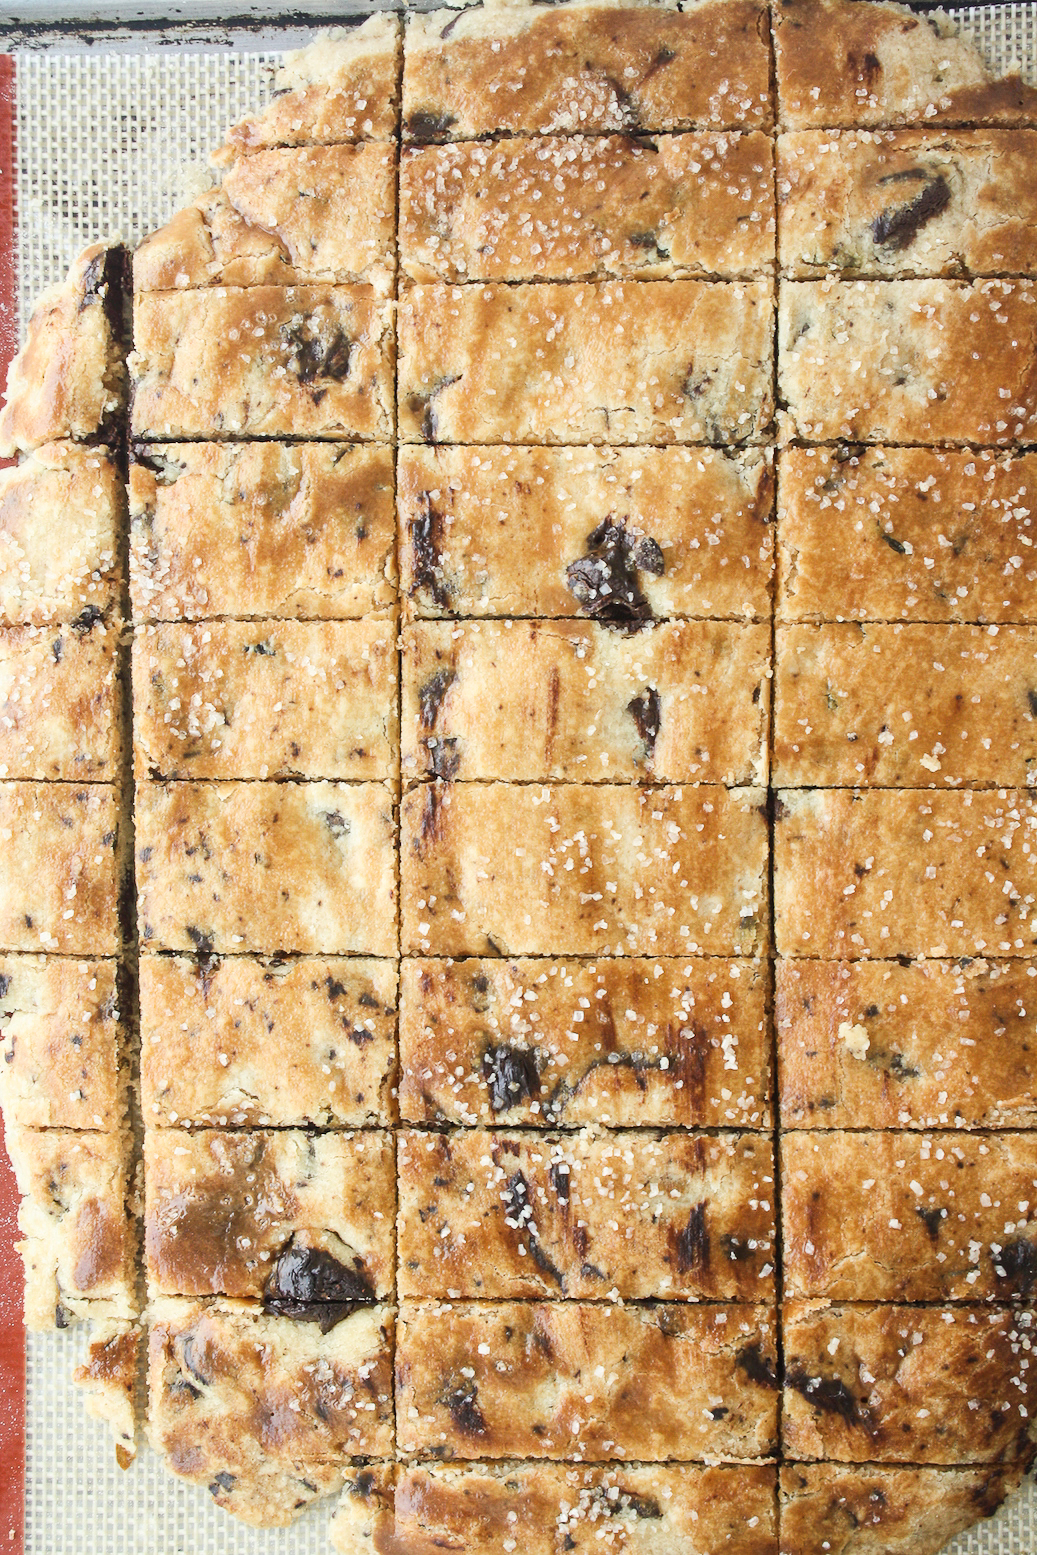 Crunchy, flavourful shortbread with chocolate chunks, olive oil and fresh rosemary!